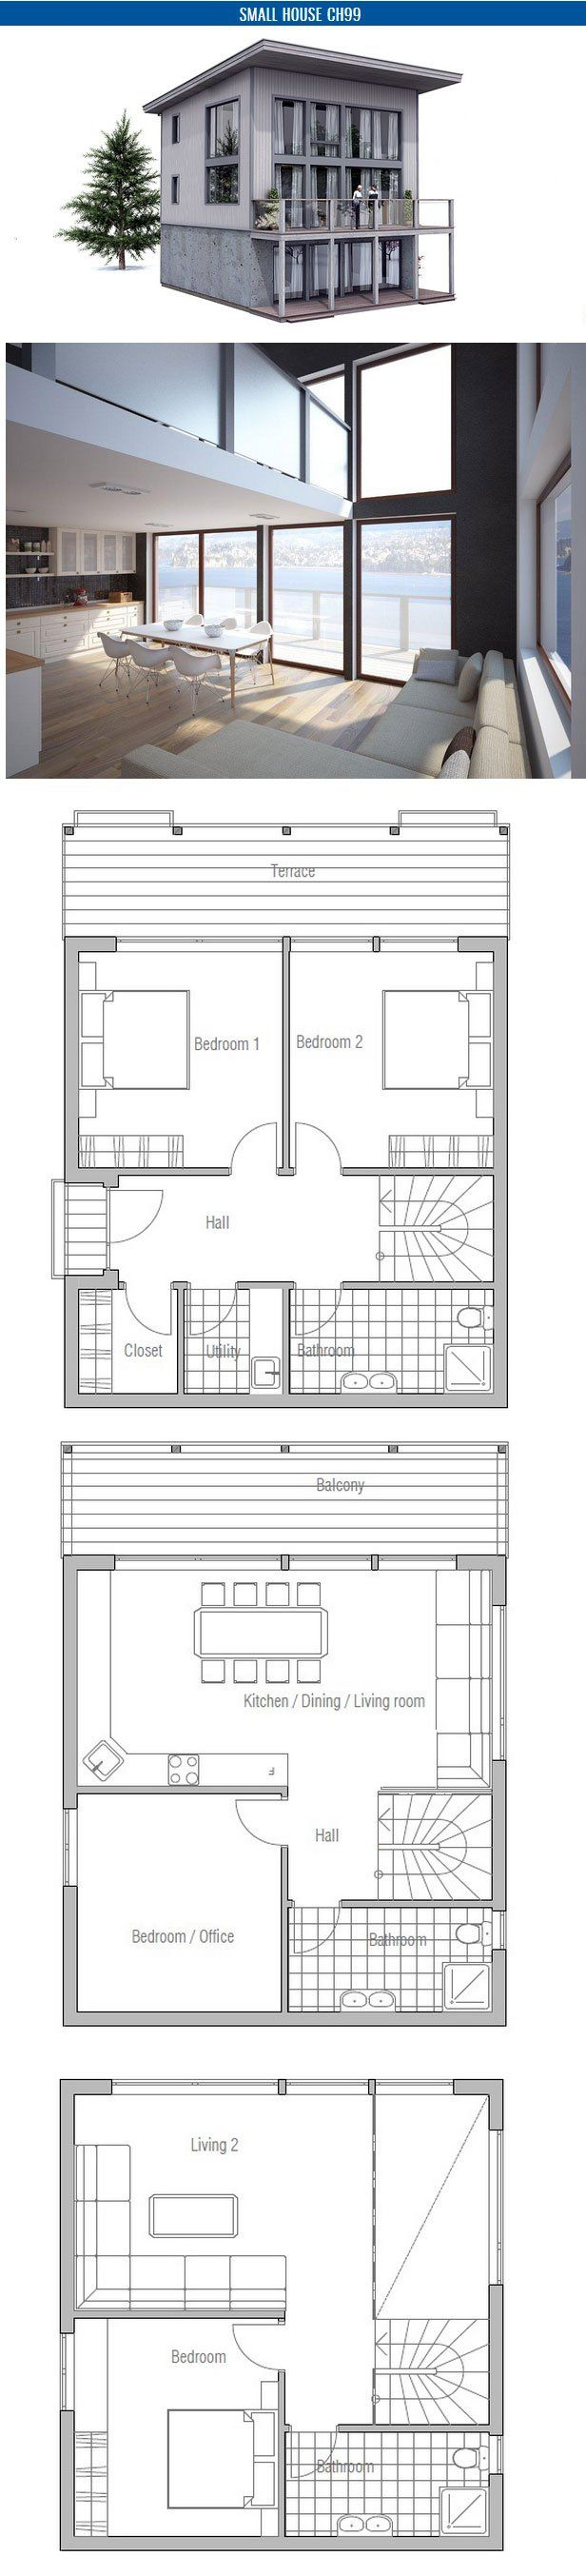 modern house plan 76461 total living area 924 sq ft 2 small house plan with four bedrooms simple lines and shapes affordable building budget